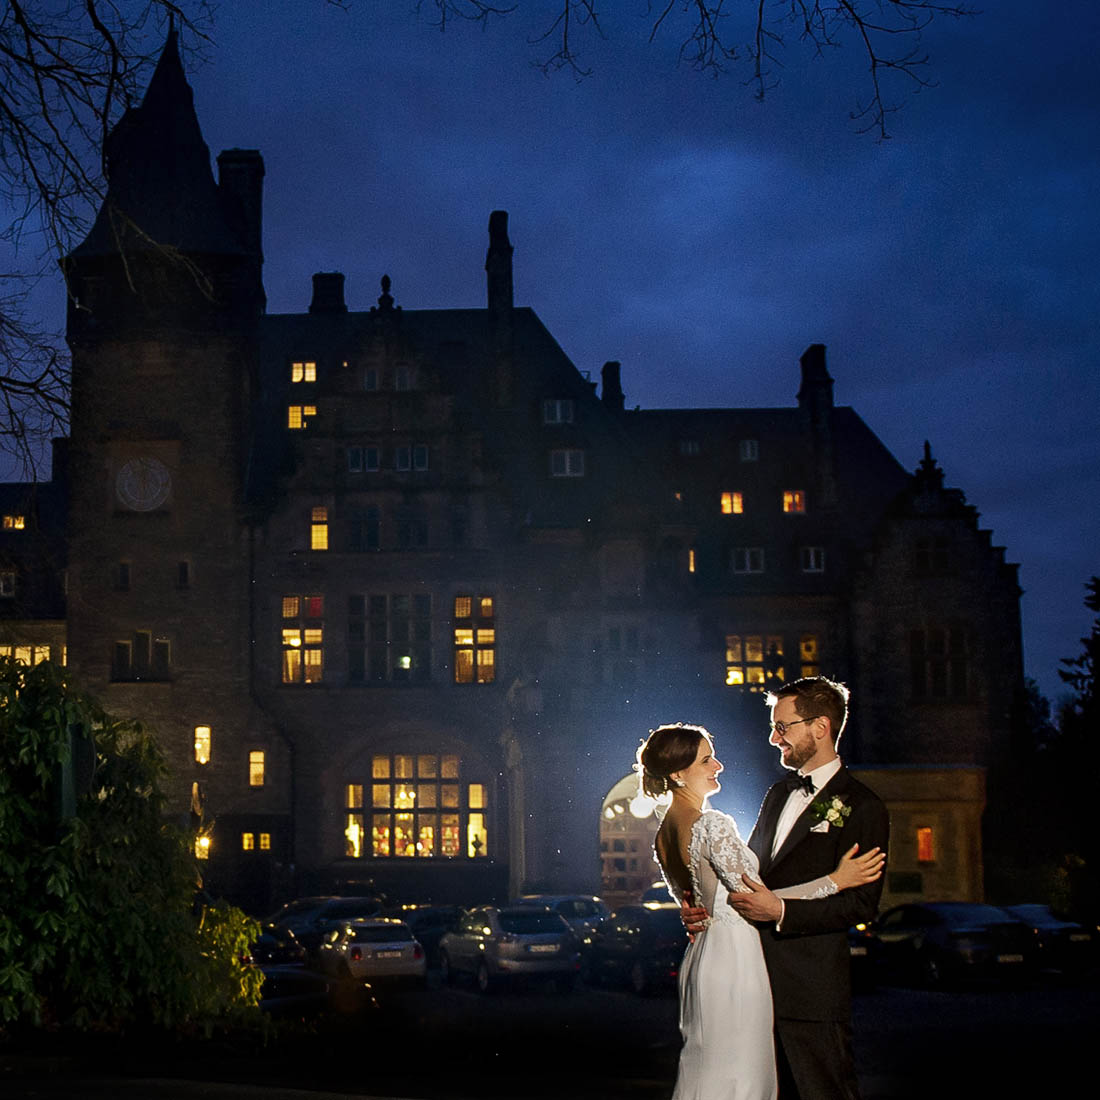 Wedding at the Castle Kronberg bride and groom photoshoot